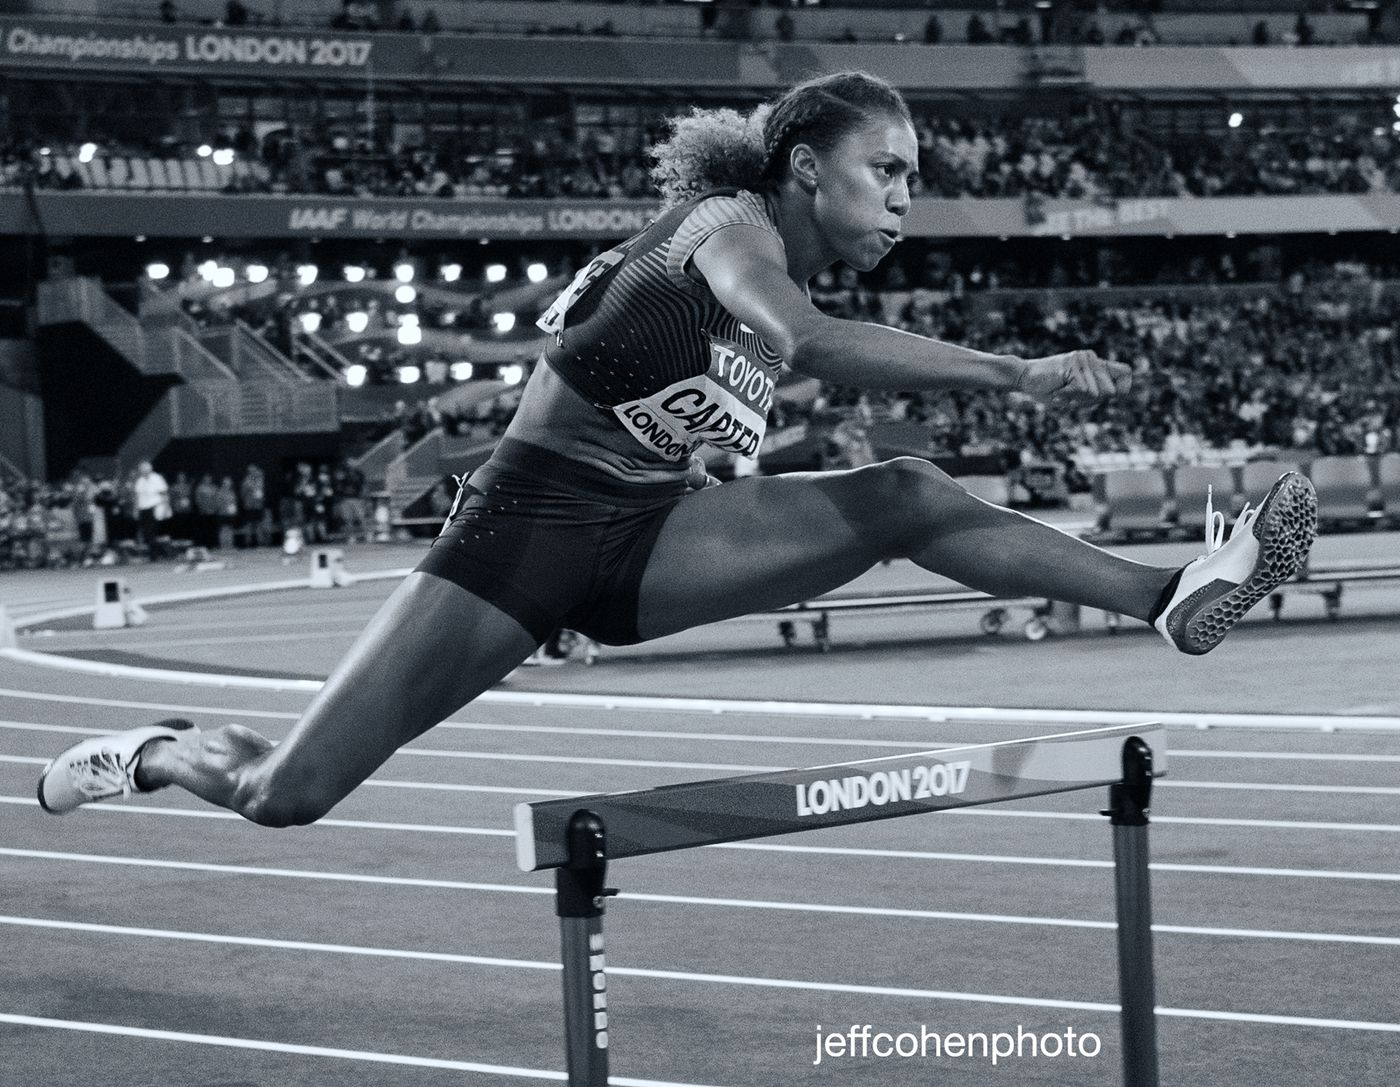 2017-IAAF-WC-London-night-7-cartere-400hw--8383--jeff-cohen-photo--web.jpg